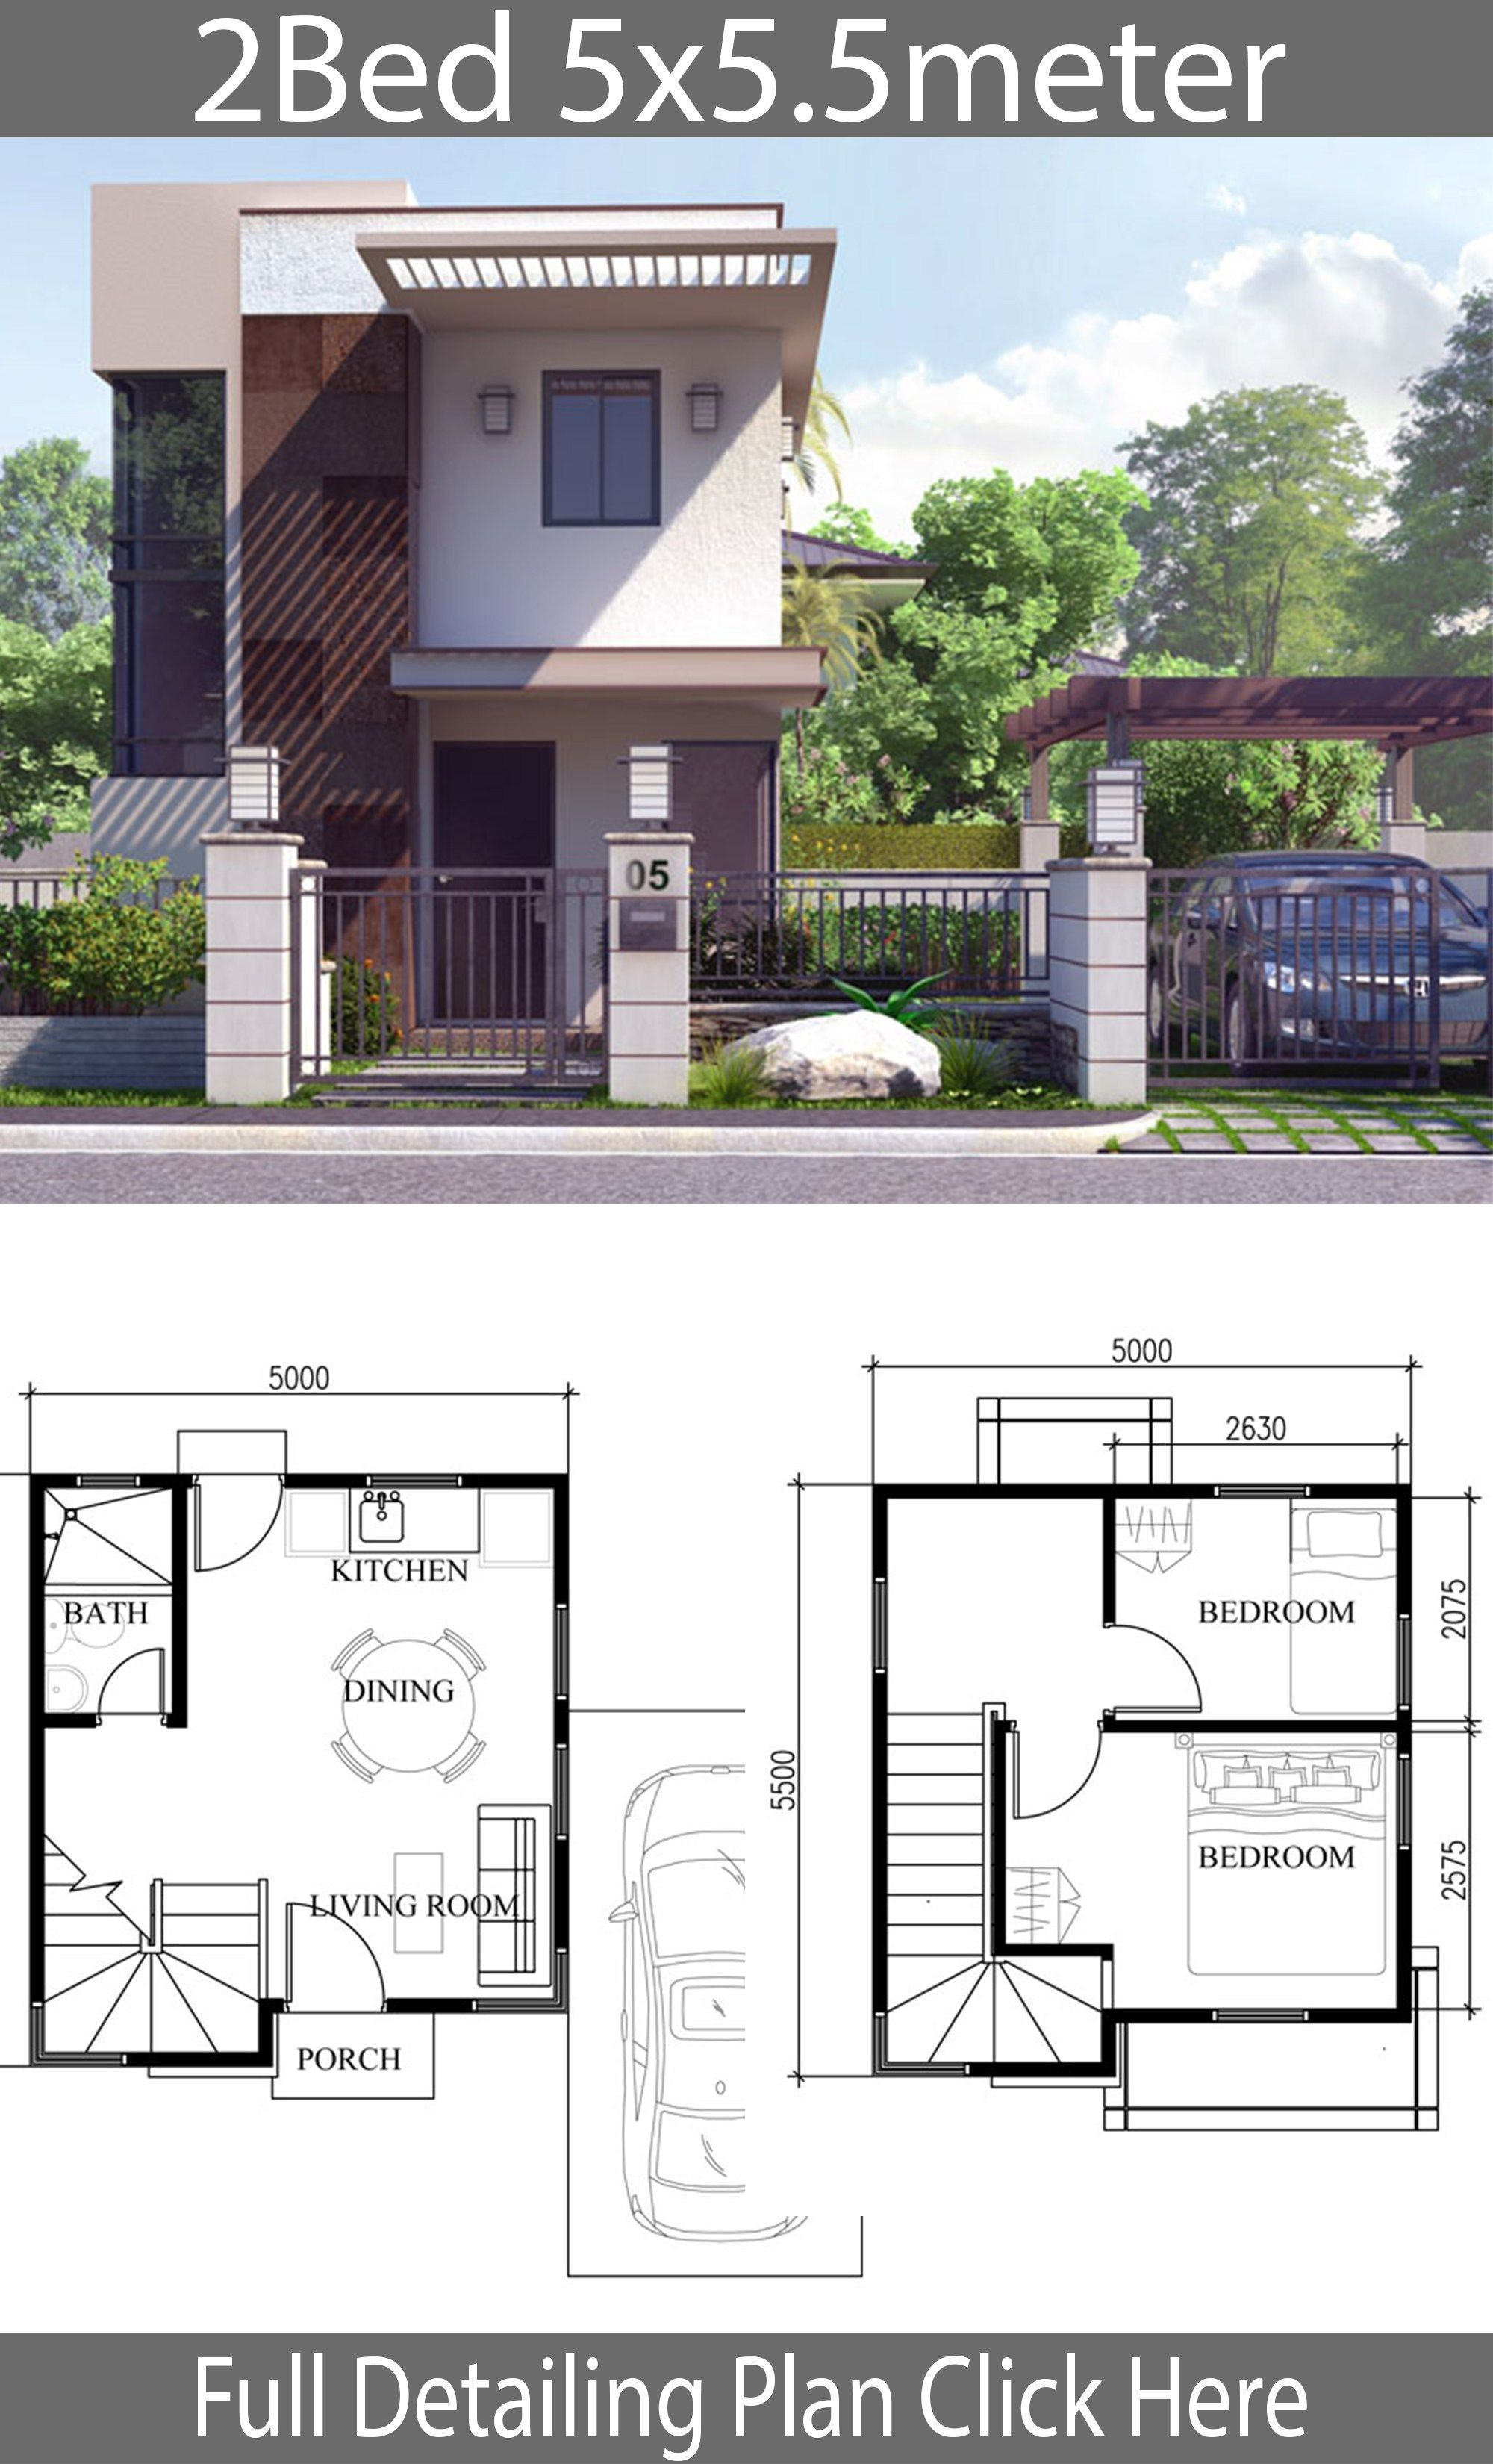 Unique Small House Plans Fresh Small Home Design Plan 5x5 5m with 2 Bedrooms